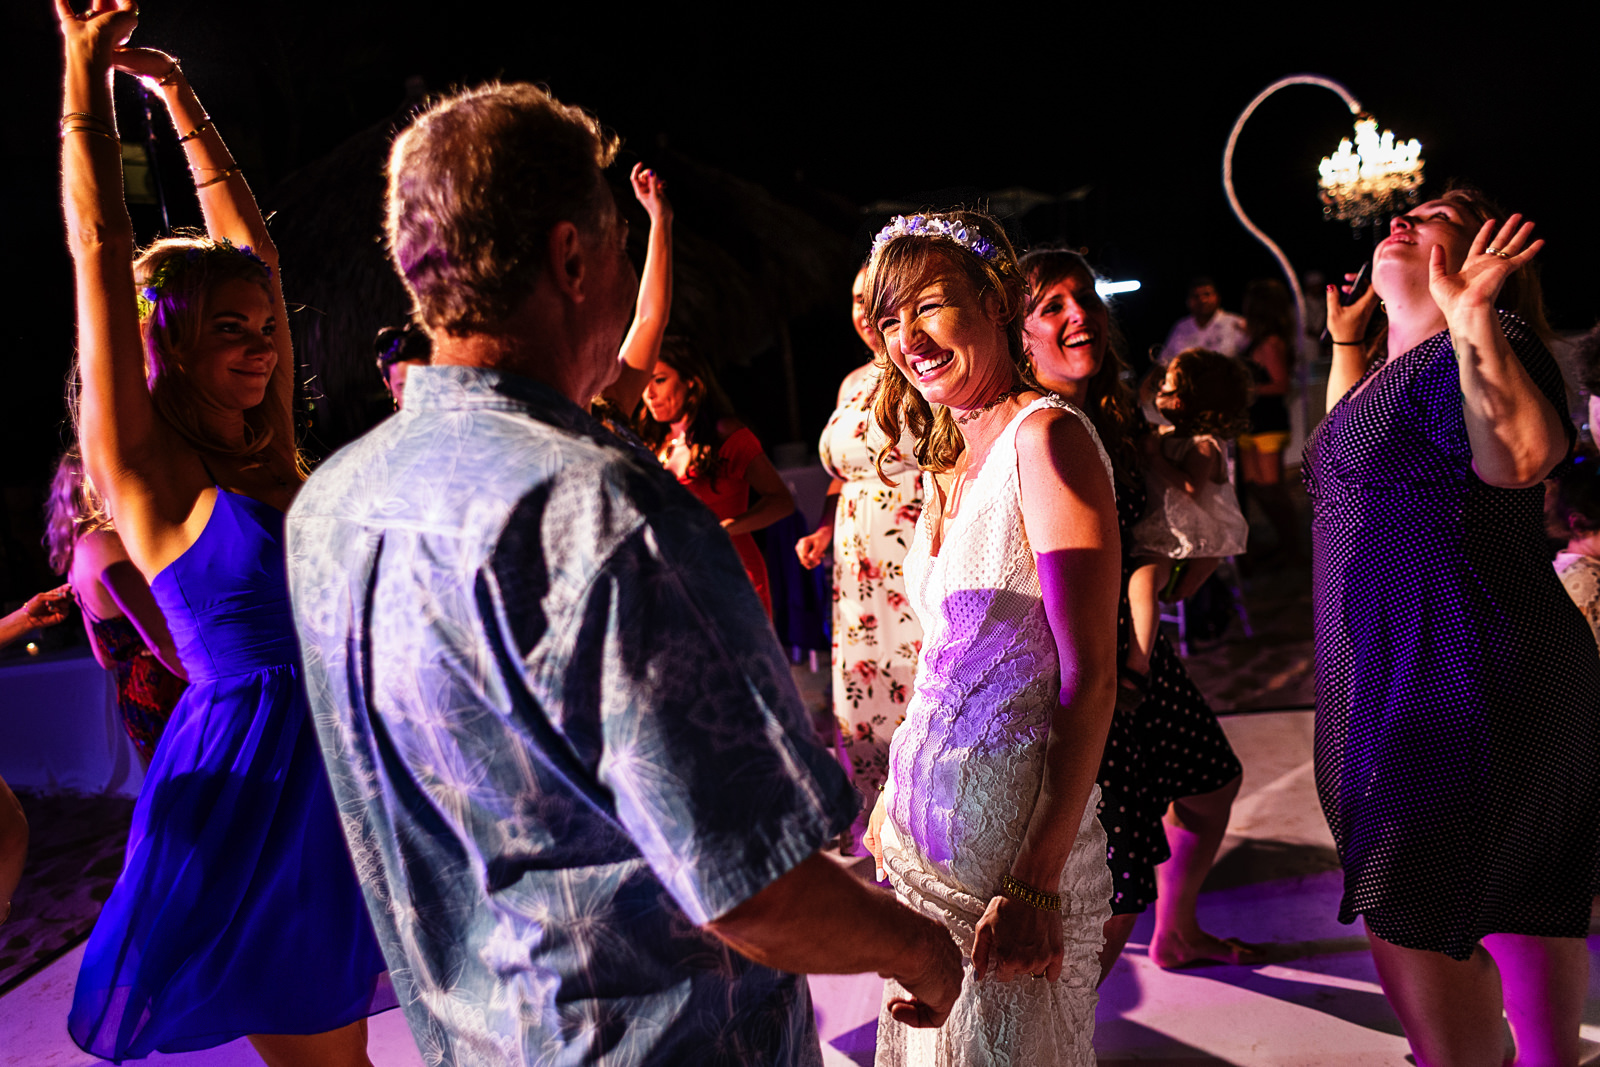 Bride dancing with the guests at the wedding reception